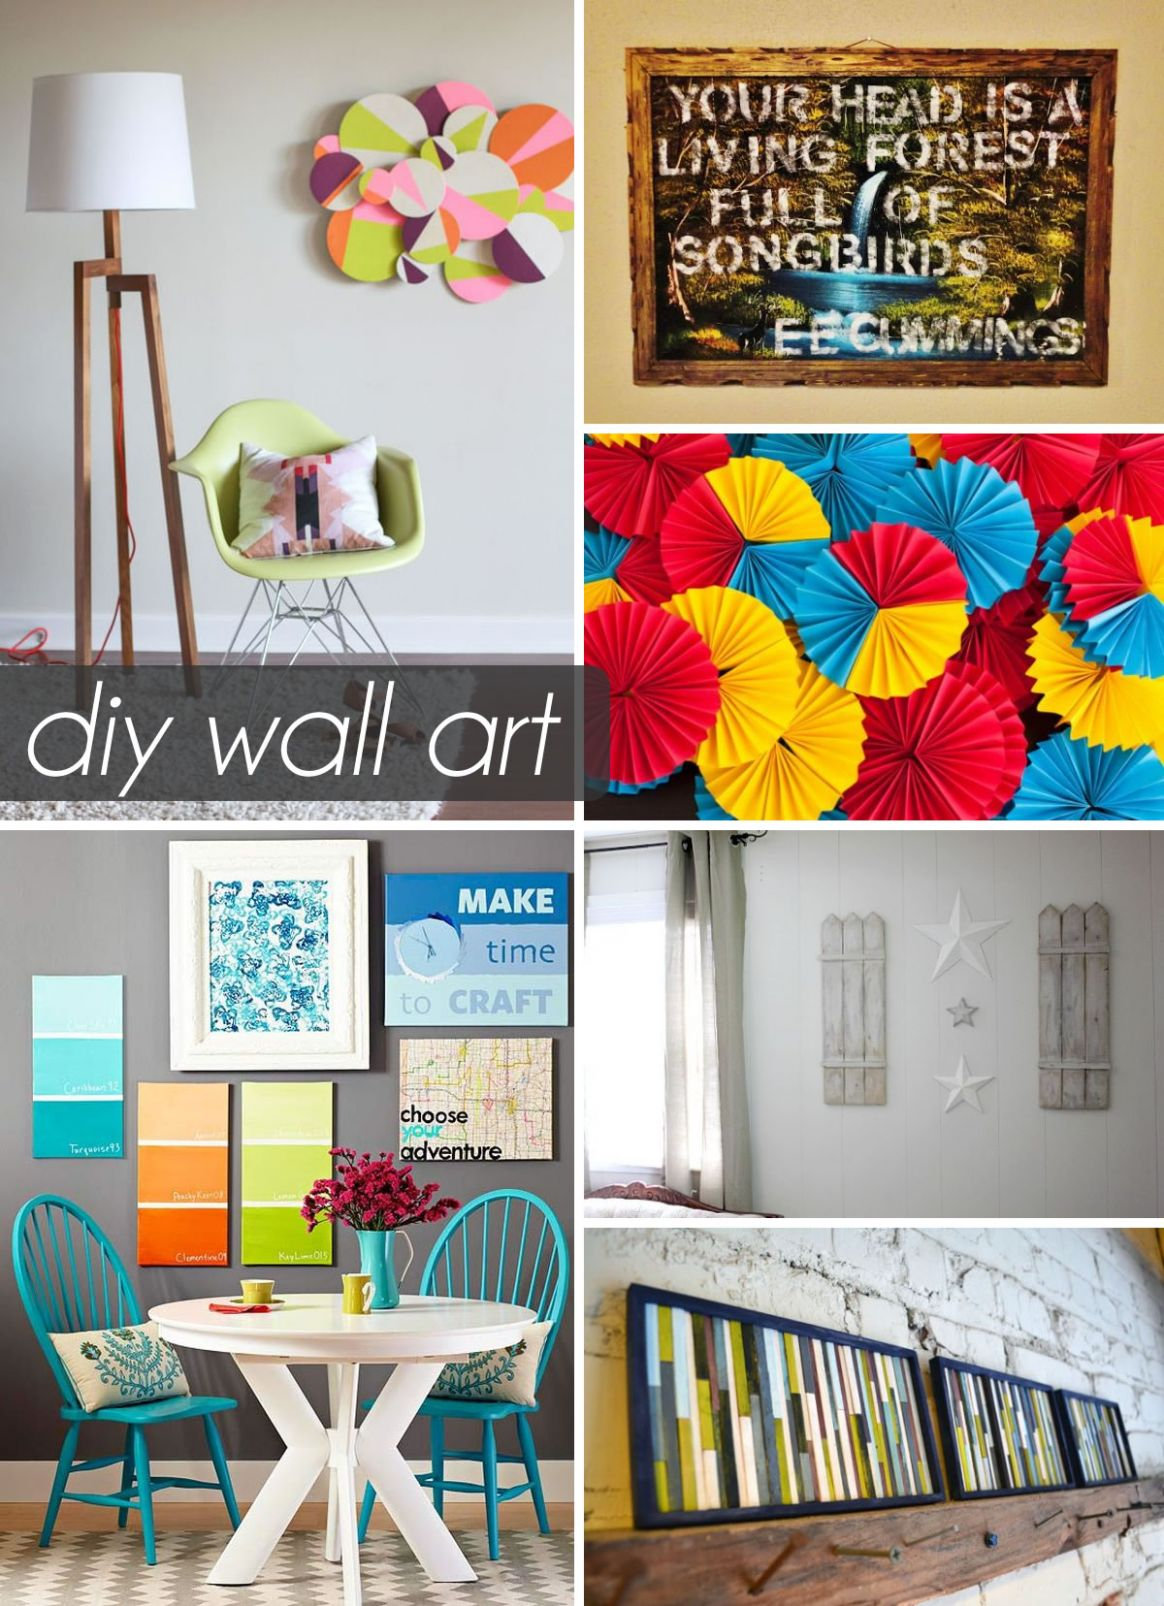 9 Beautiful DIY Wall Art Ideas For Your Home - wall decoration ideas make